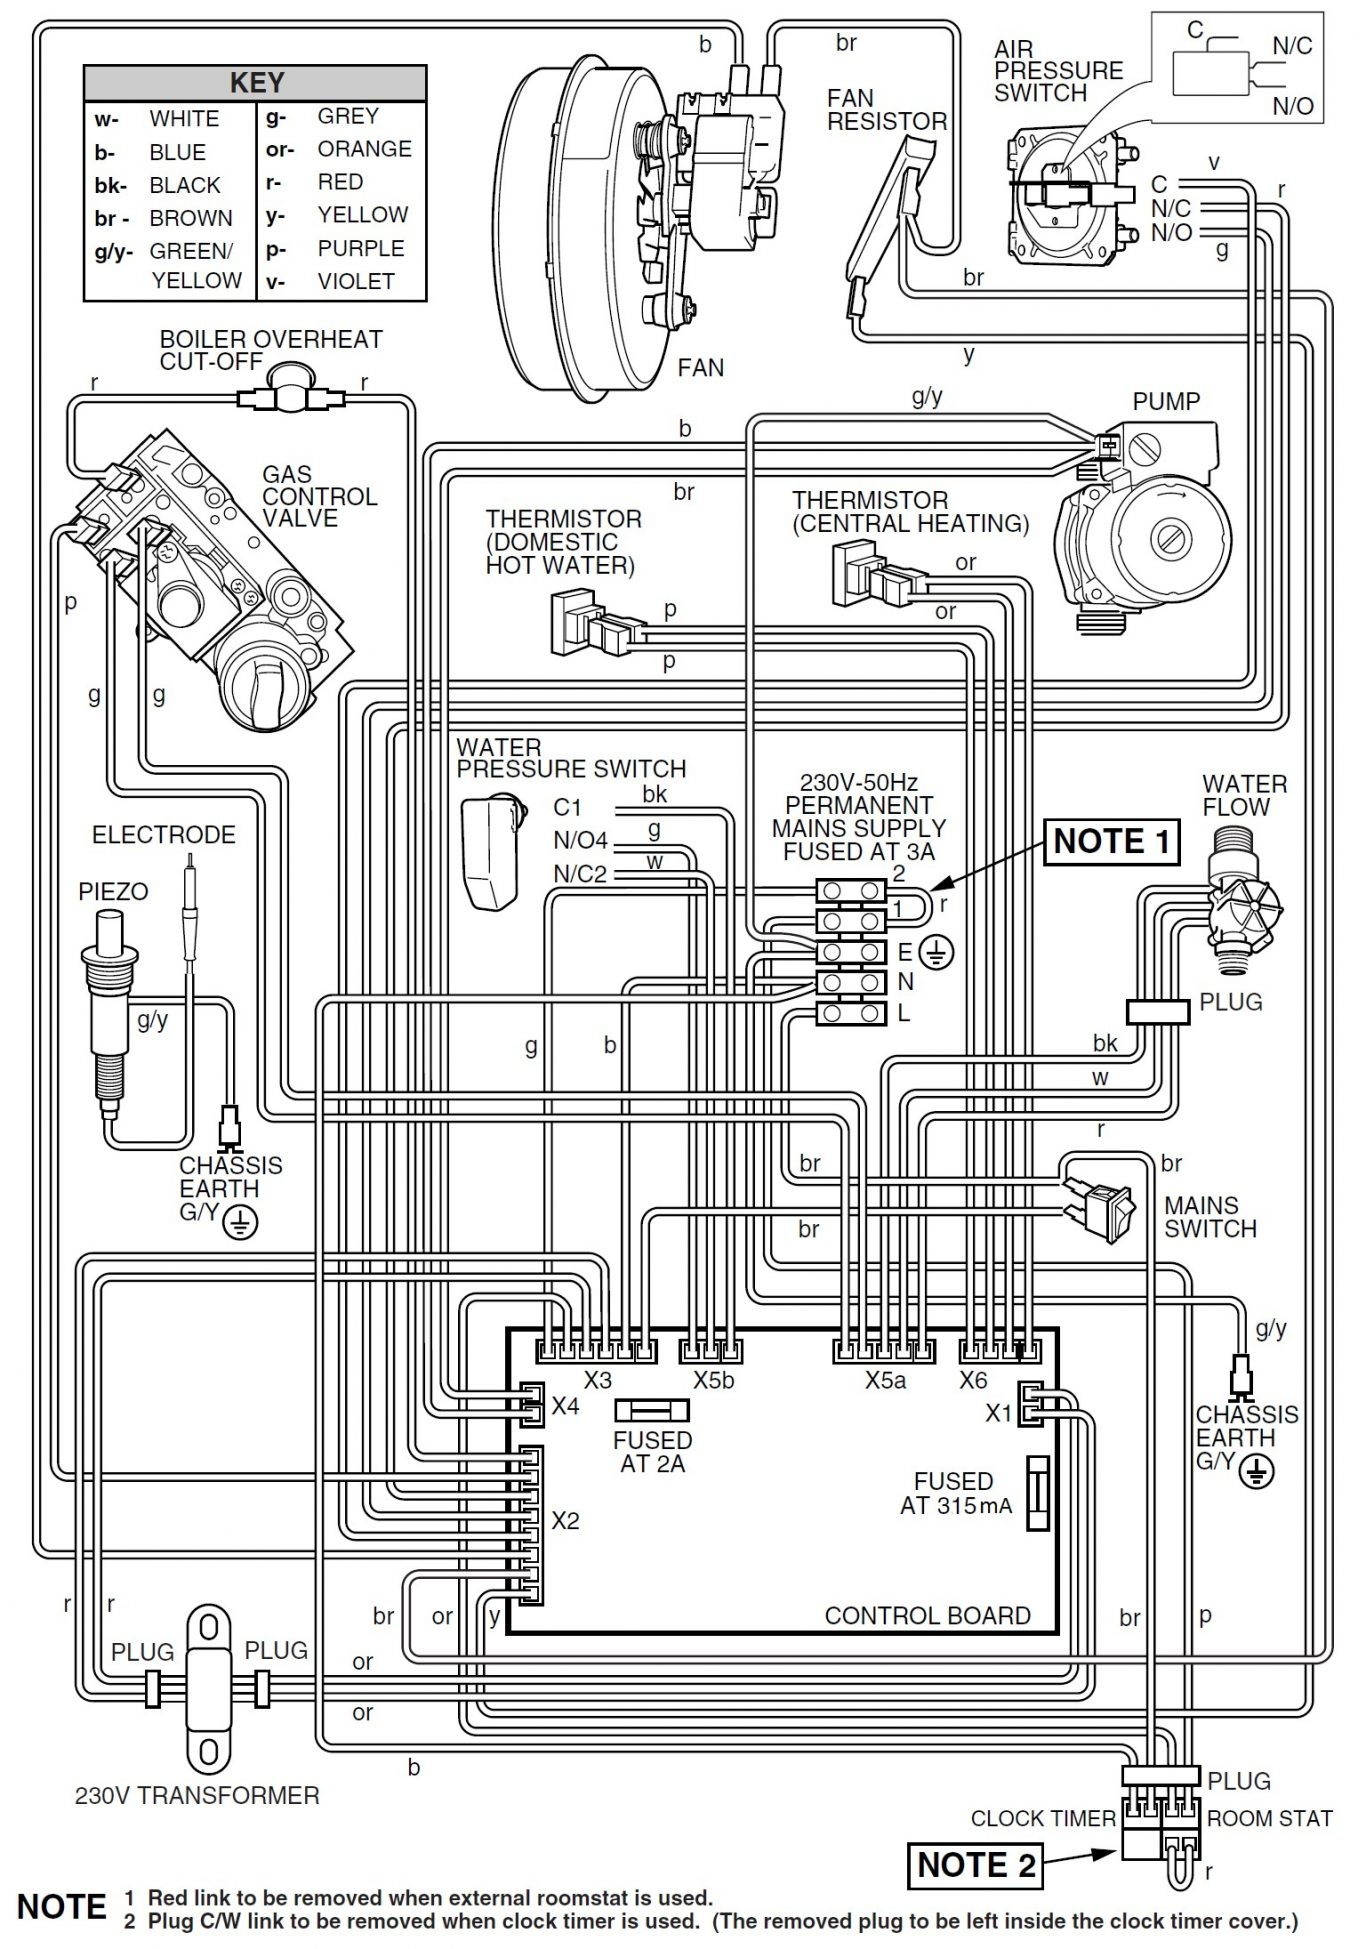 wiring for oil furnace oil furnace wiring diagram older furnace